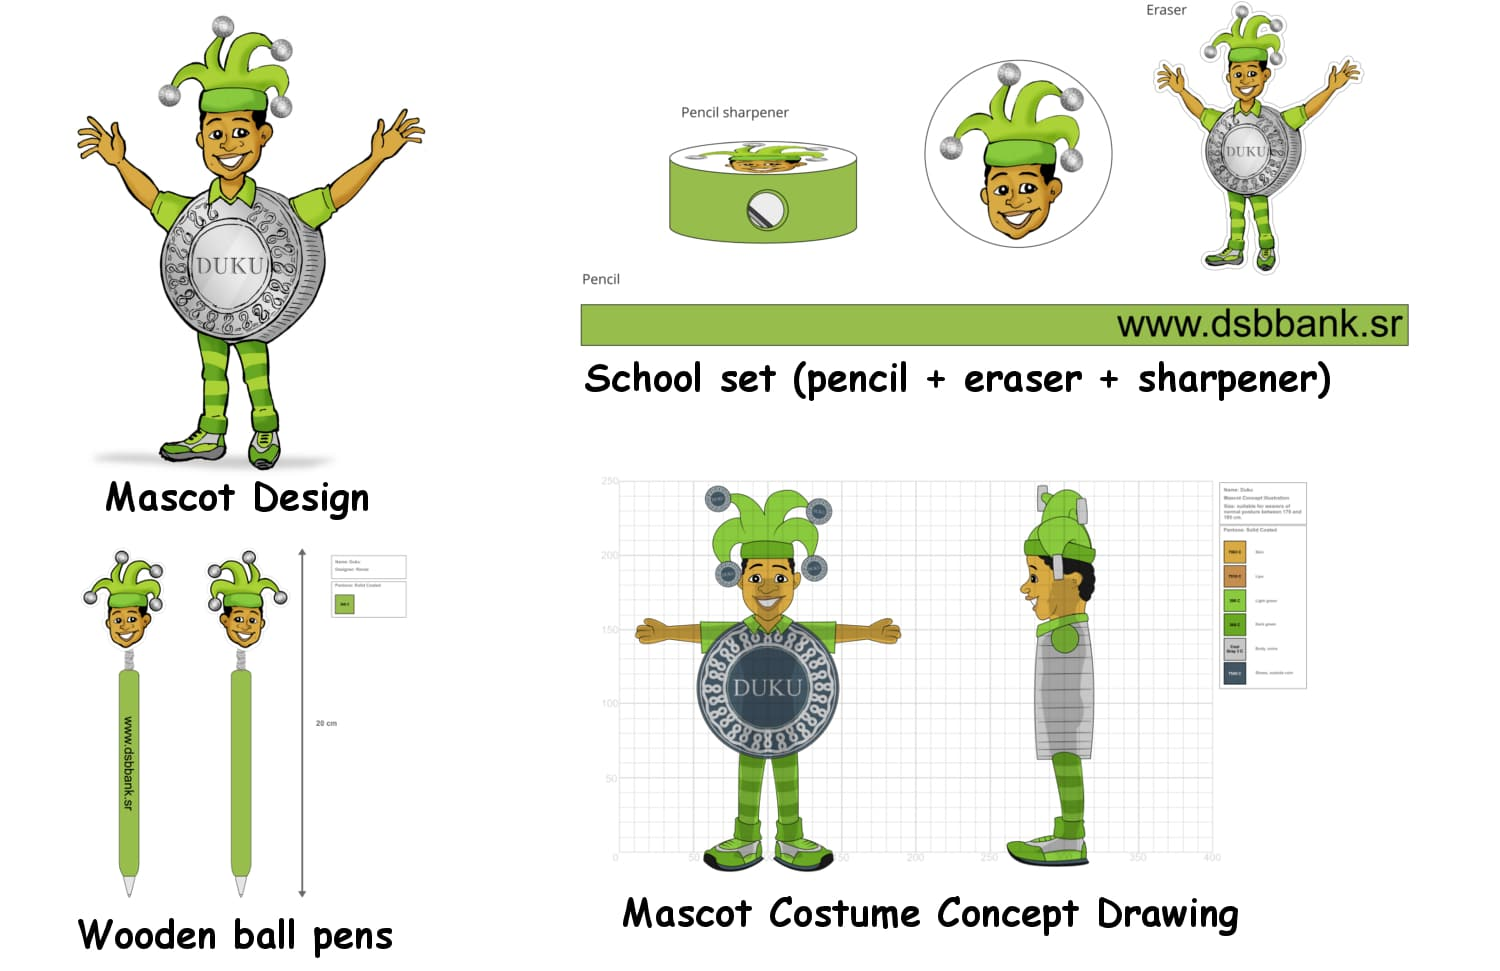 DUKU Mascot Concept Drawings Mascot Costume, Schoolsets and Wooden pens -Promo Bears-